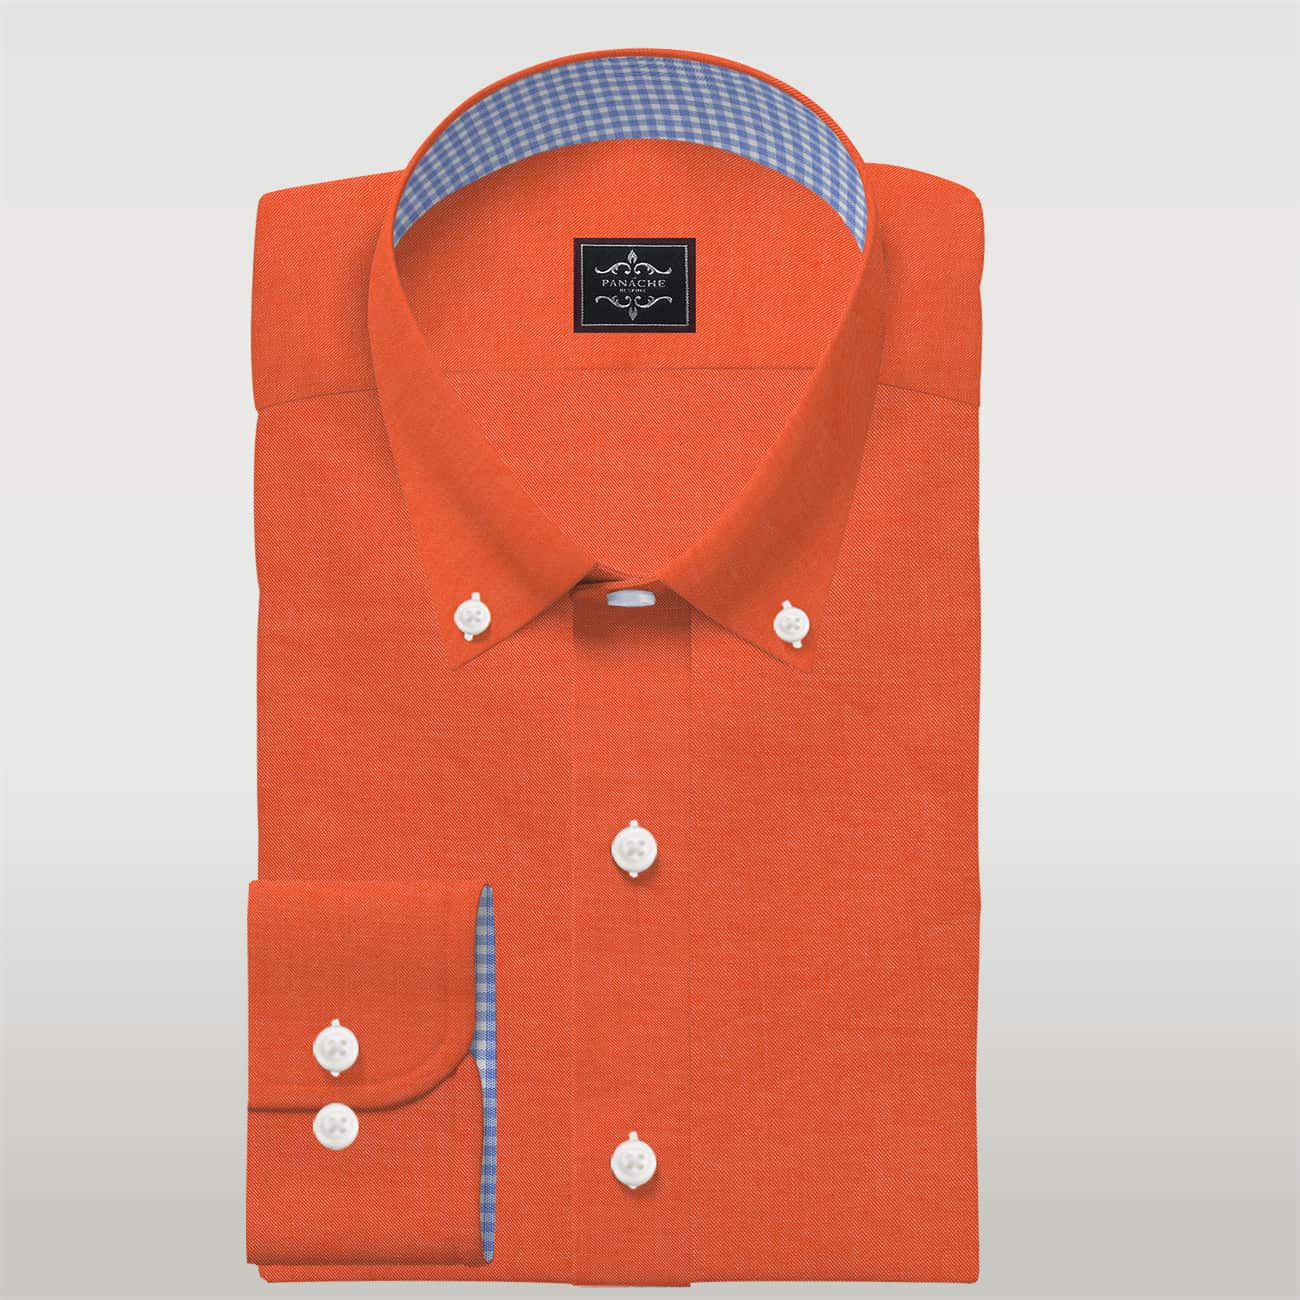 Mens Button Up Dress Shirt Luxury Orange Custom Made Button-Down Shirts